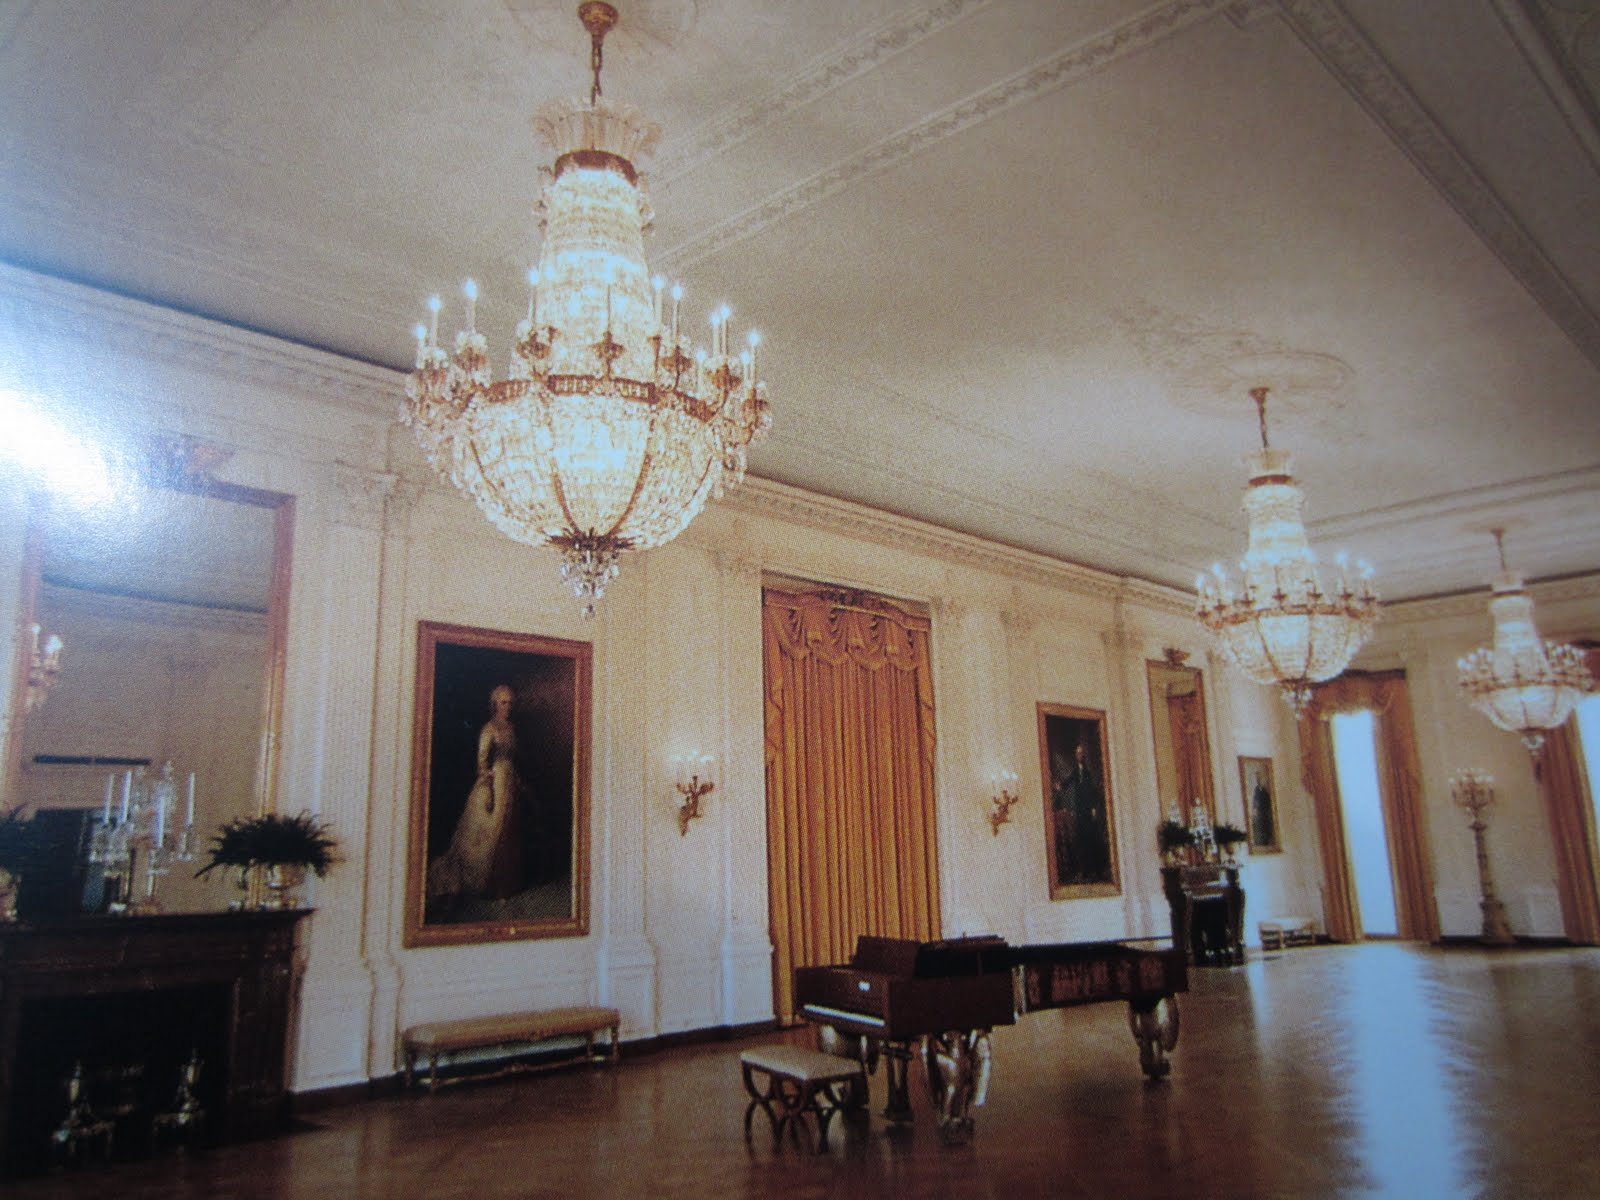 white house floor1 green roomjpg. While We Liked The Blue Room, Red And Green All Really State Dining Room Grand Foyer Best. White House Floor1 Roomjpg